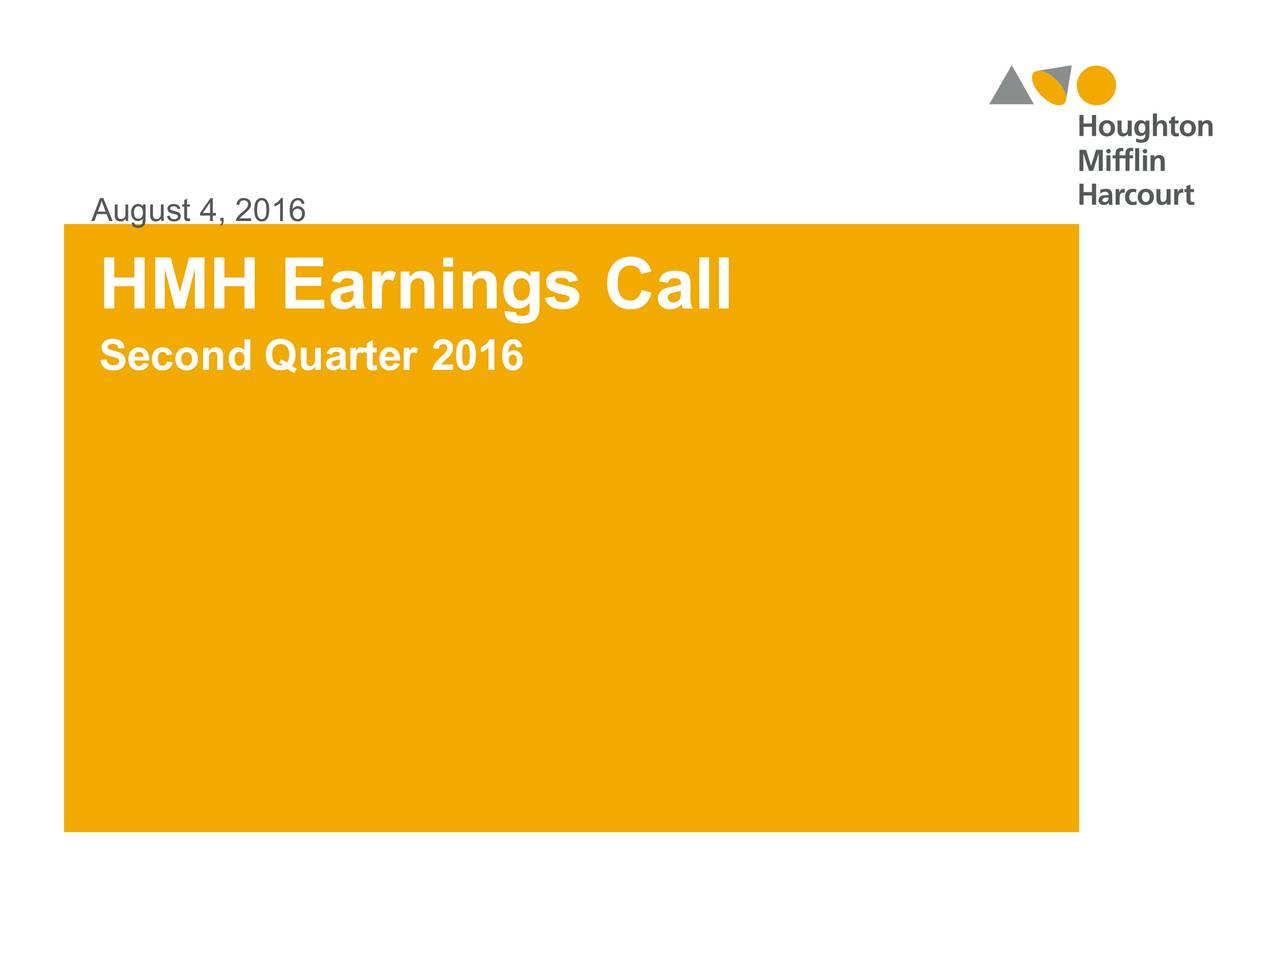 HMH Earnings Call Second Quarter 2016